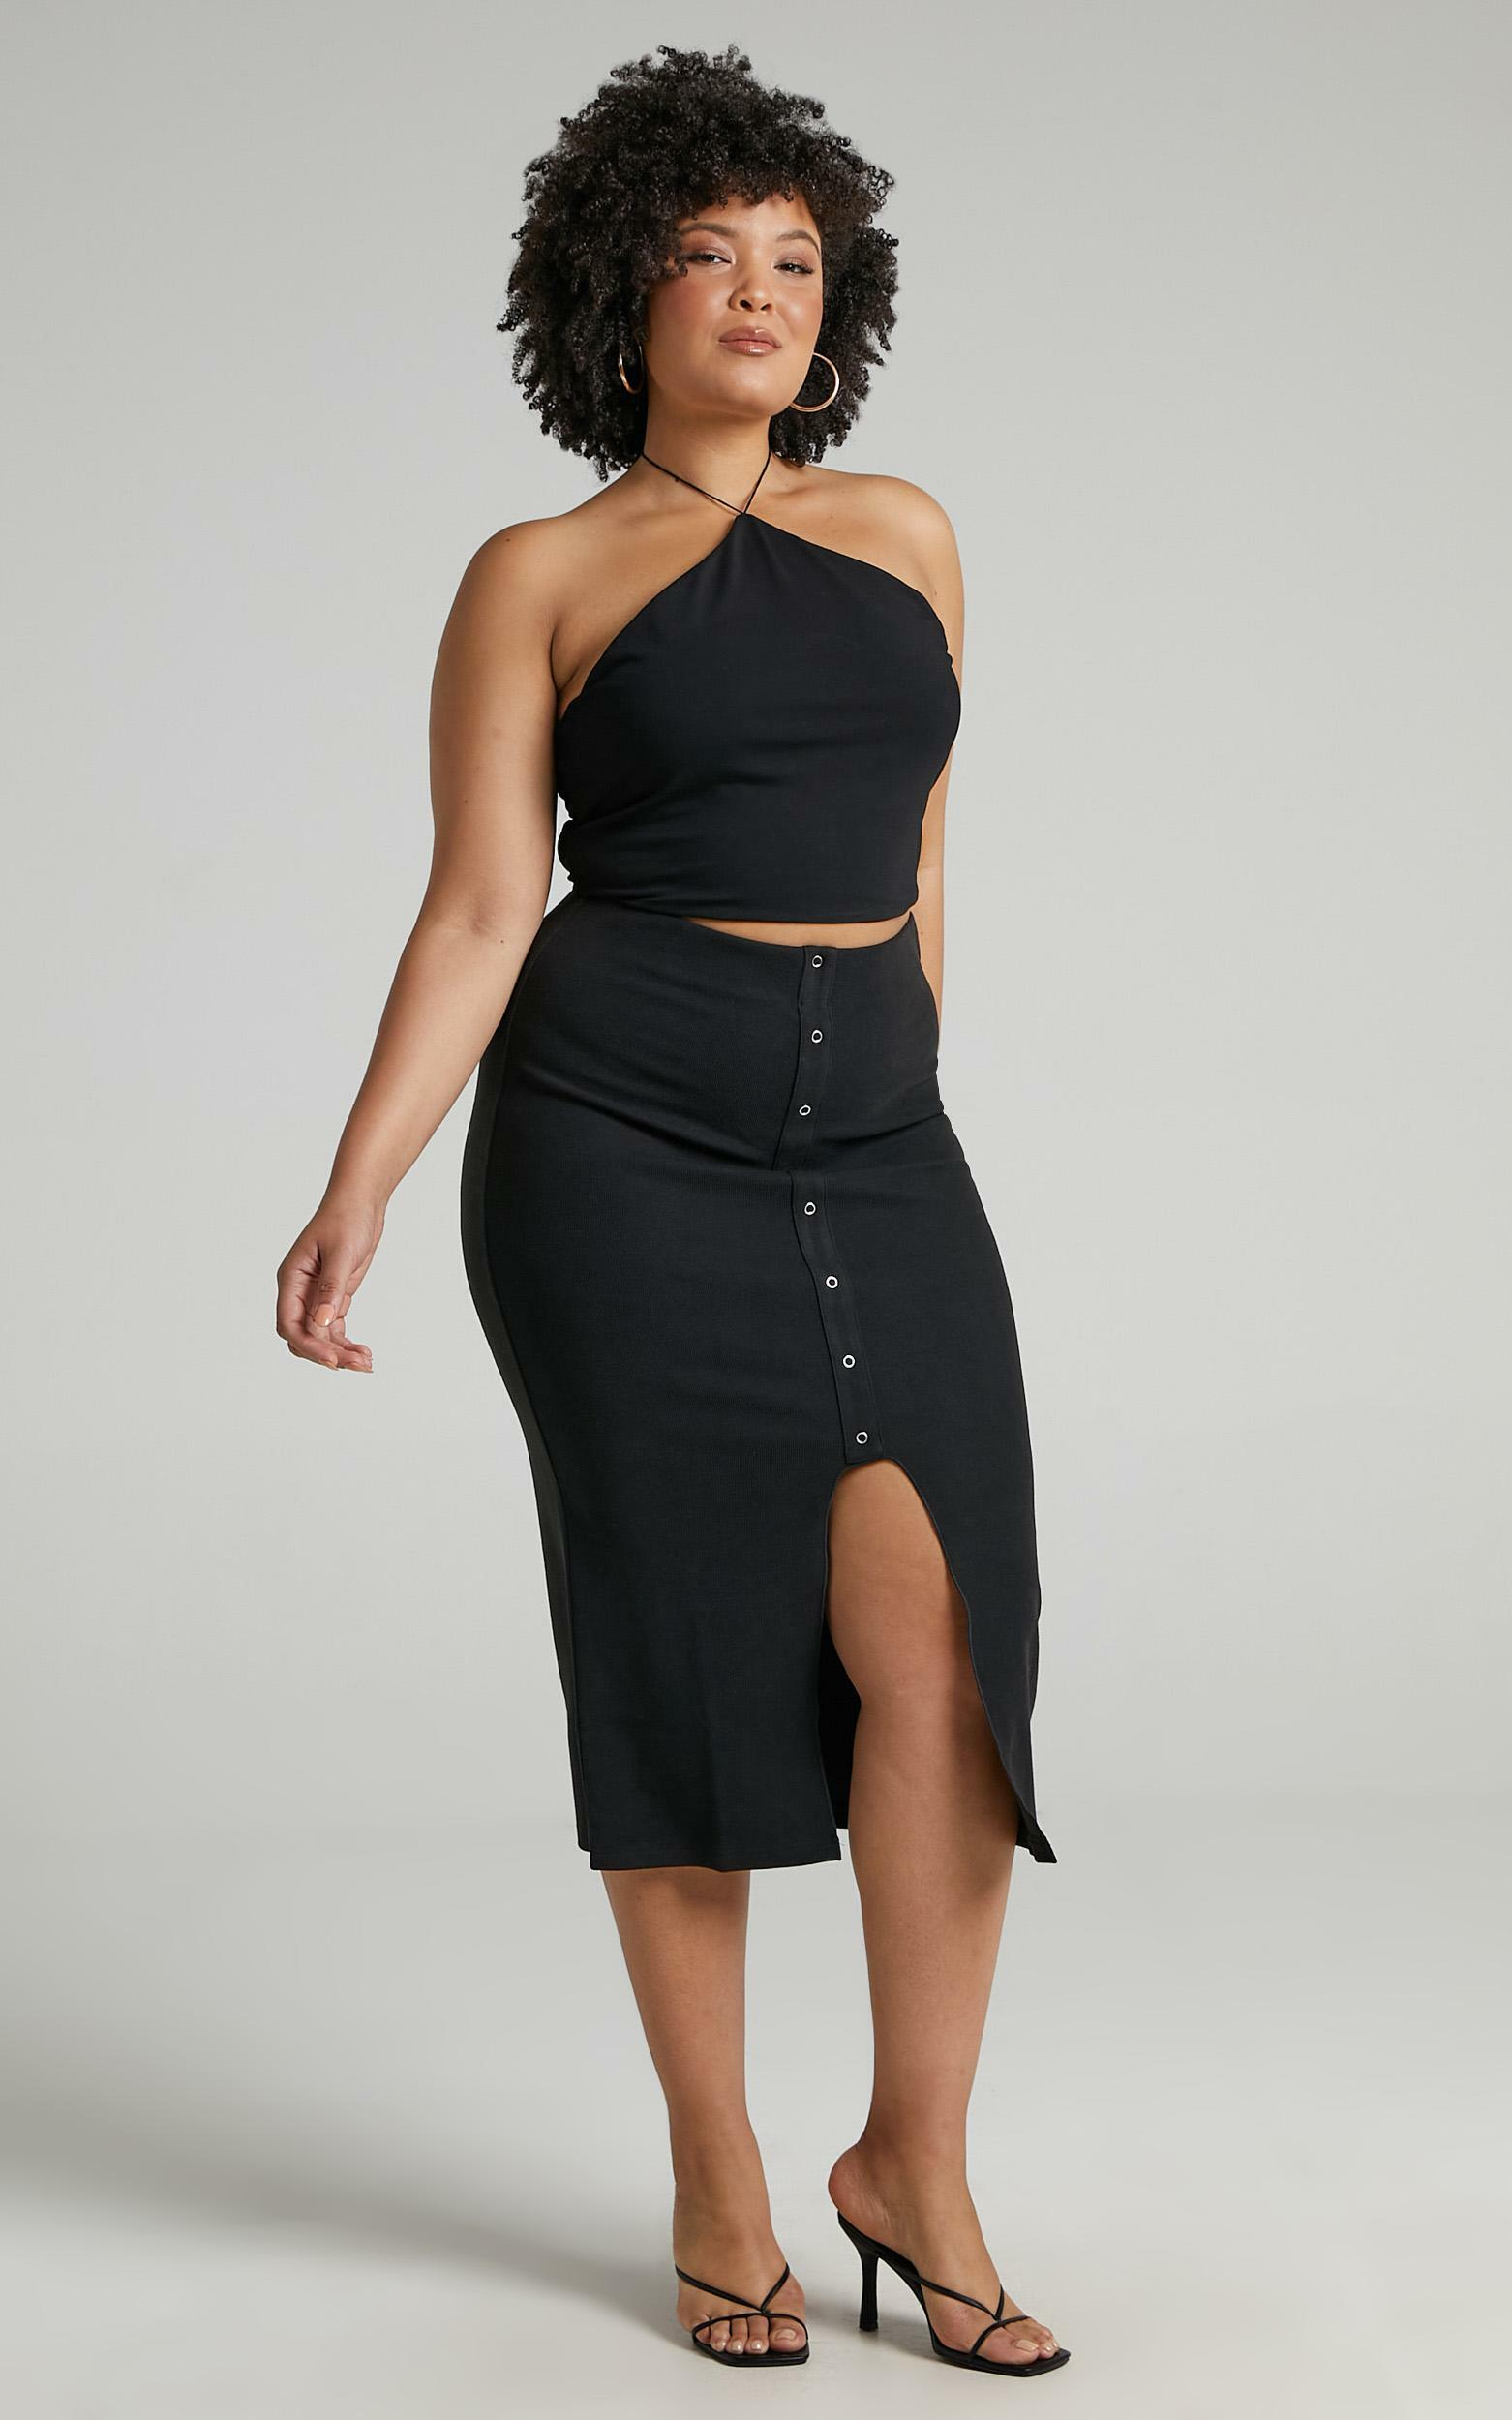 Into Motion Skirt in Black Rib - 04, BLK1, hi-res image number null